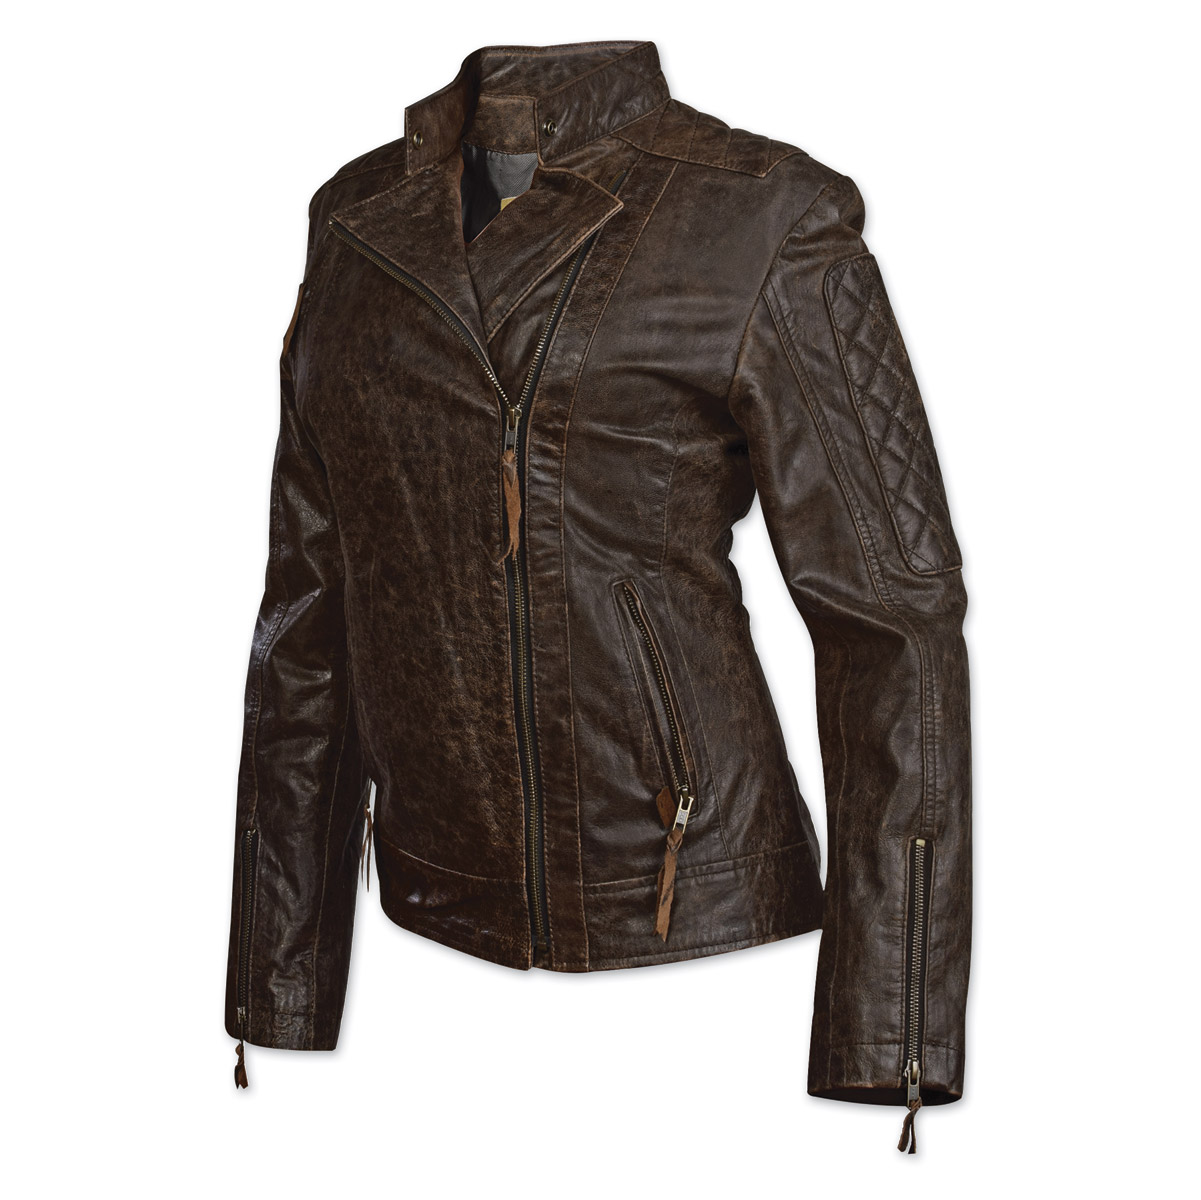 355808efb StS Ranchwear Women's Lucy Distressed Brown Leather Jacket - STS5873-SM